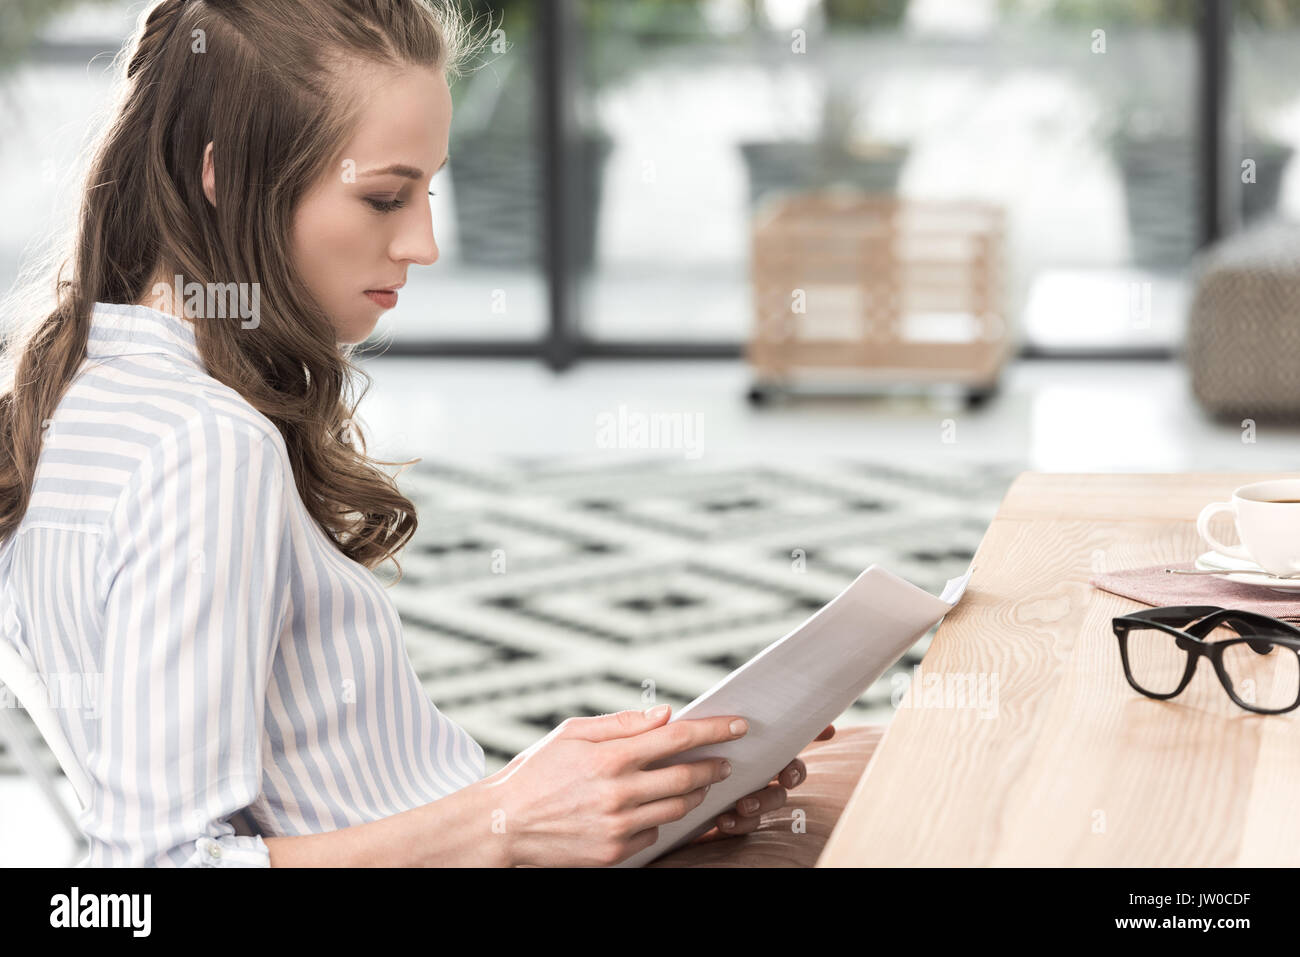 side view of concentrated businesswoman doing paperwork while working in cafe - Stock Image